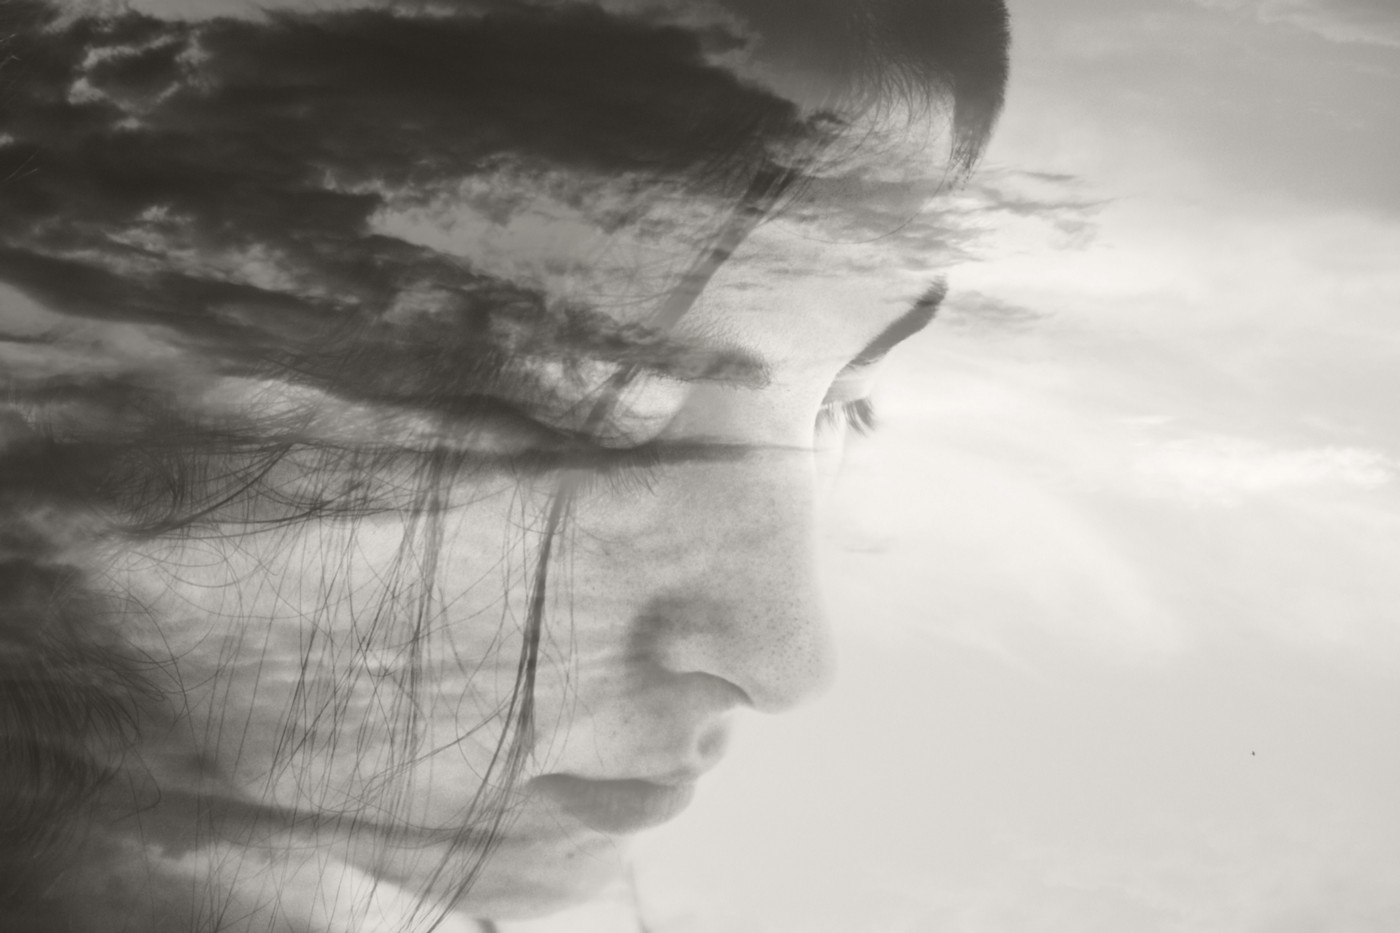 A black and white superimposed photo of a cloudy sky and a woman's face.